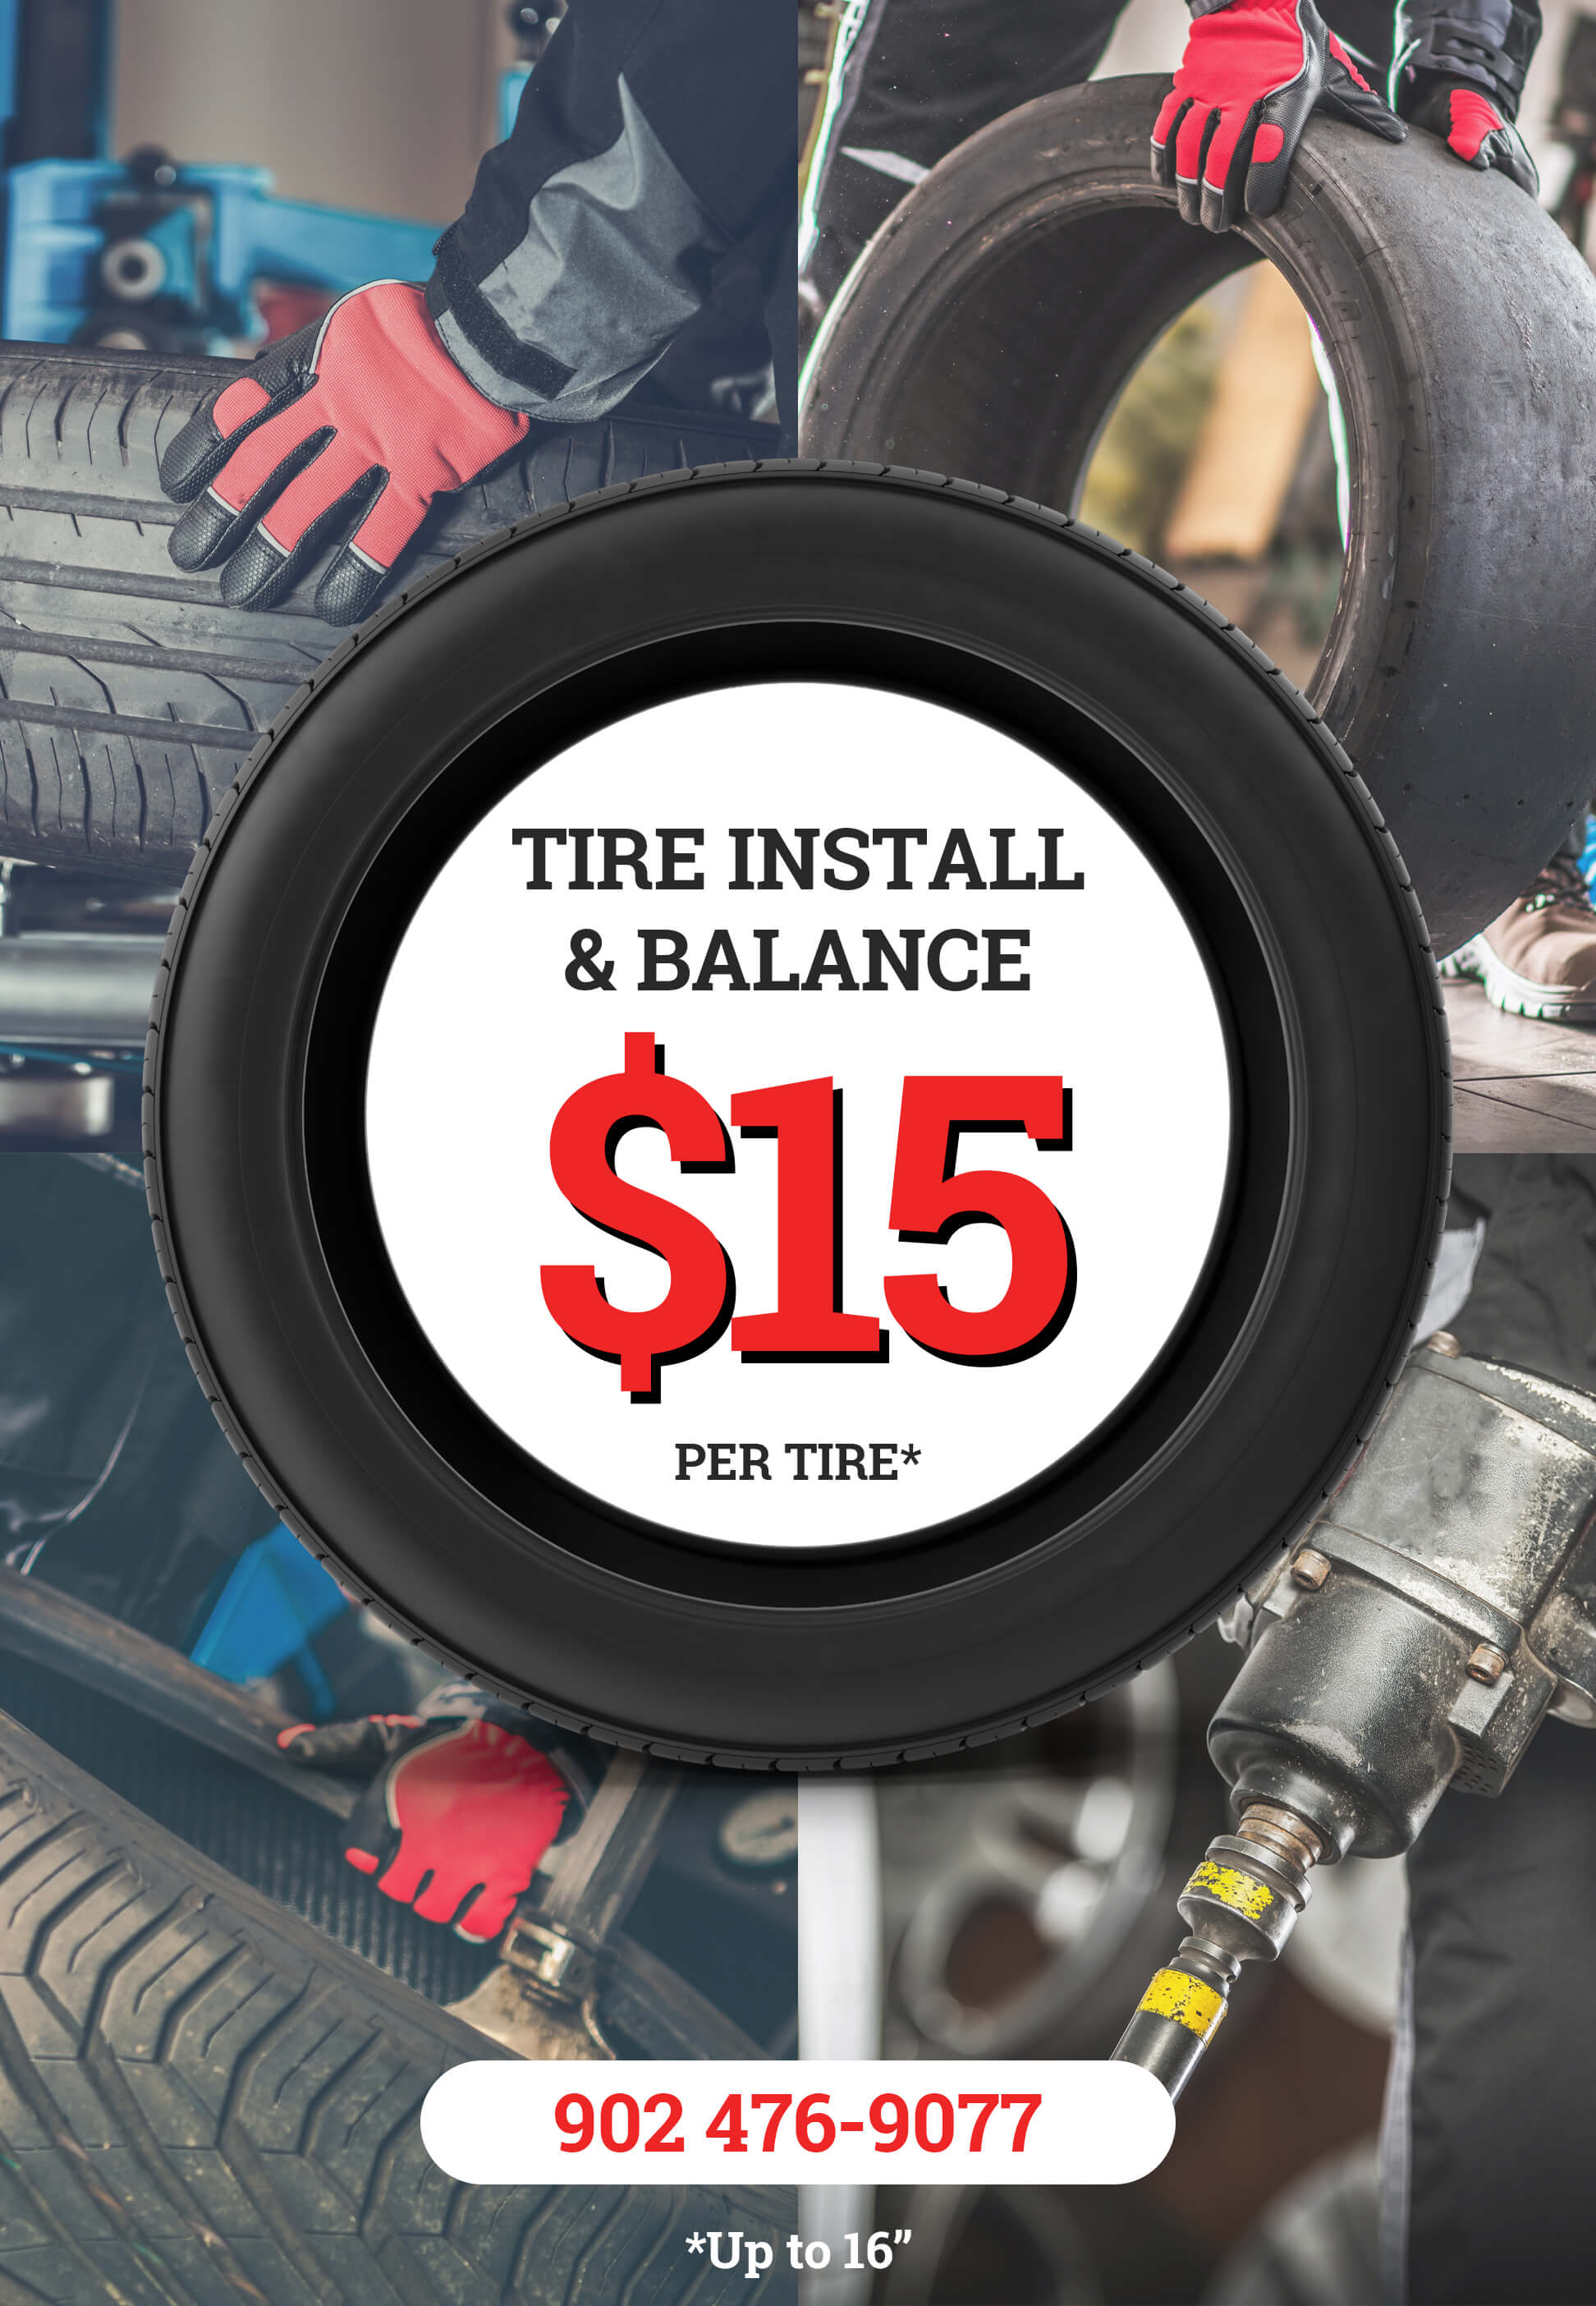 Tire balance & install starting at only $15.00 per tire with new tire purchase. *Up to 16